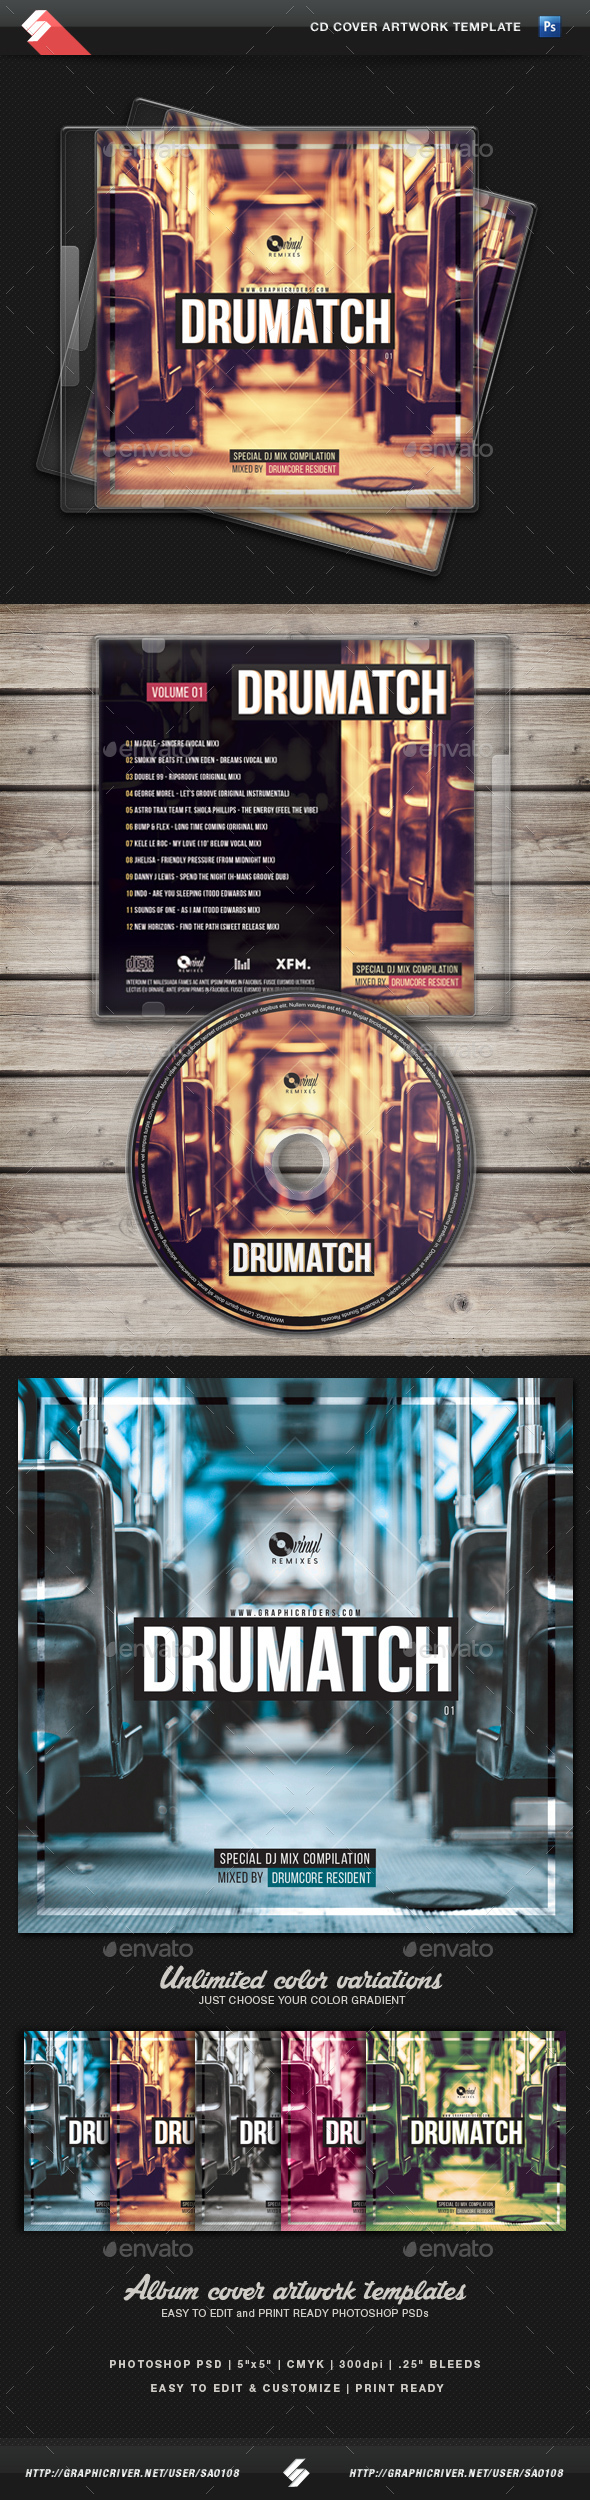 Drumatch vol.1 - CD Cover Artwork Template - CD & DVD Artwork Print Templates